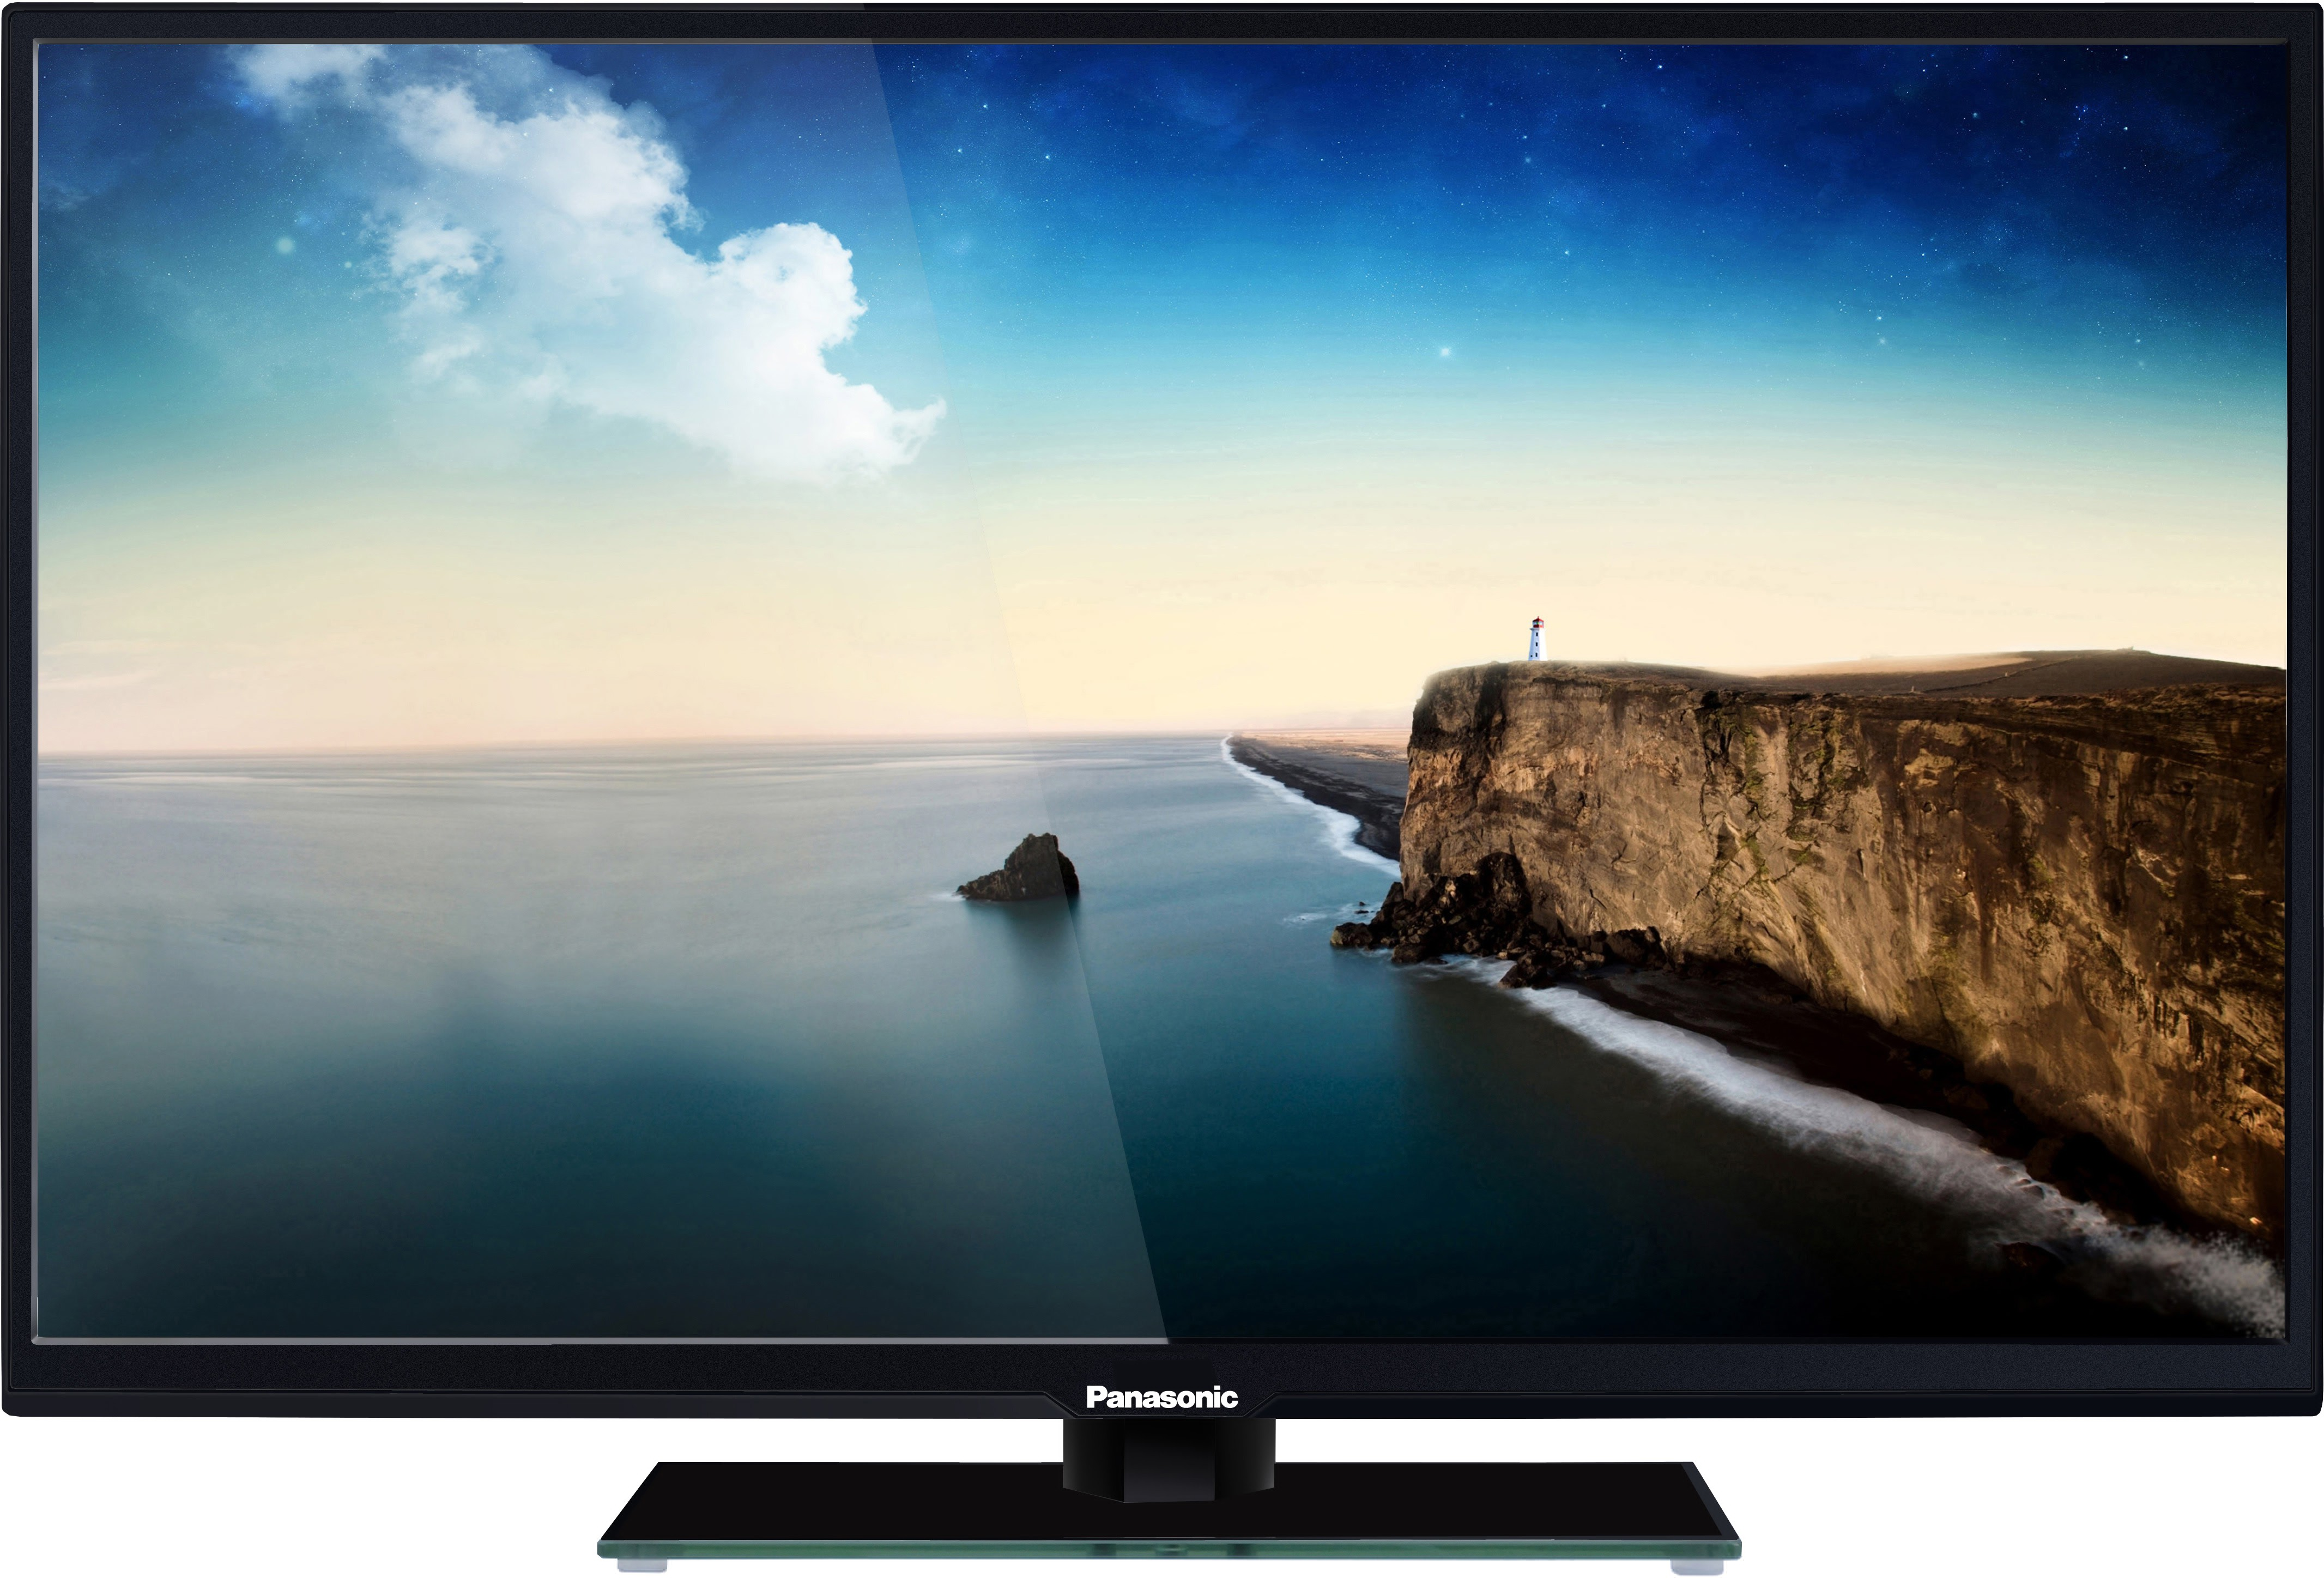 fe35377a7 Panasonic 80cm (32) HD Ready LED TV TV Price in Indian Cities ...